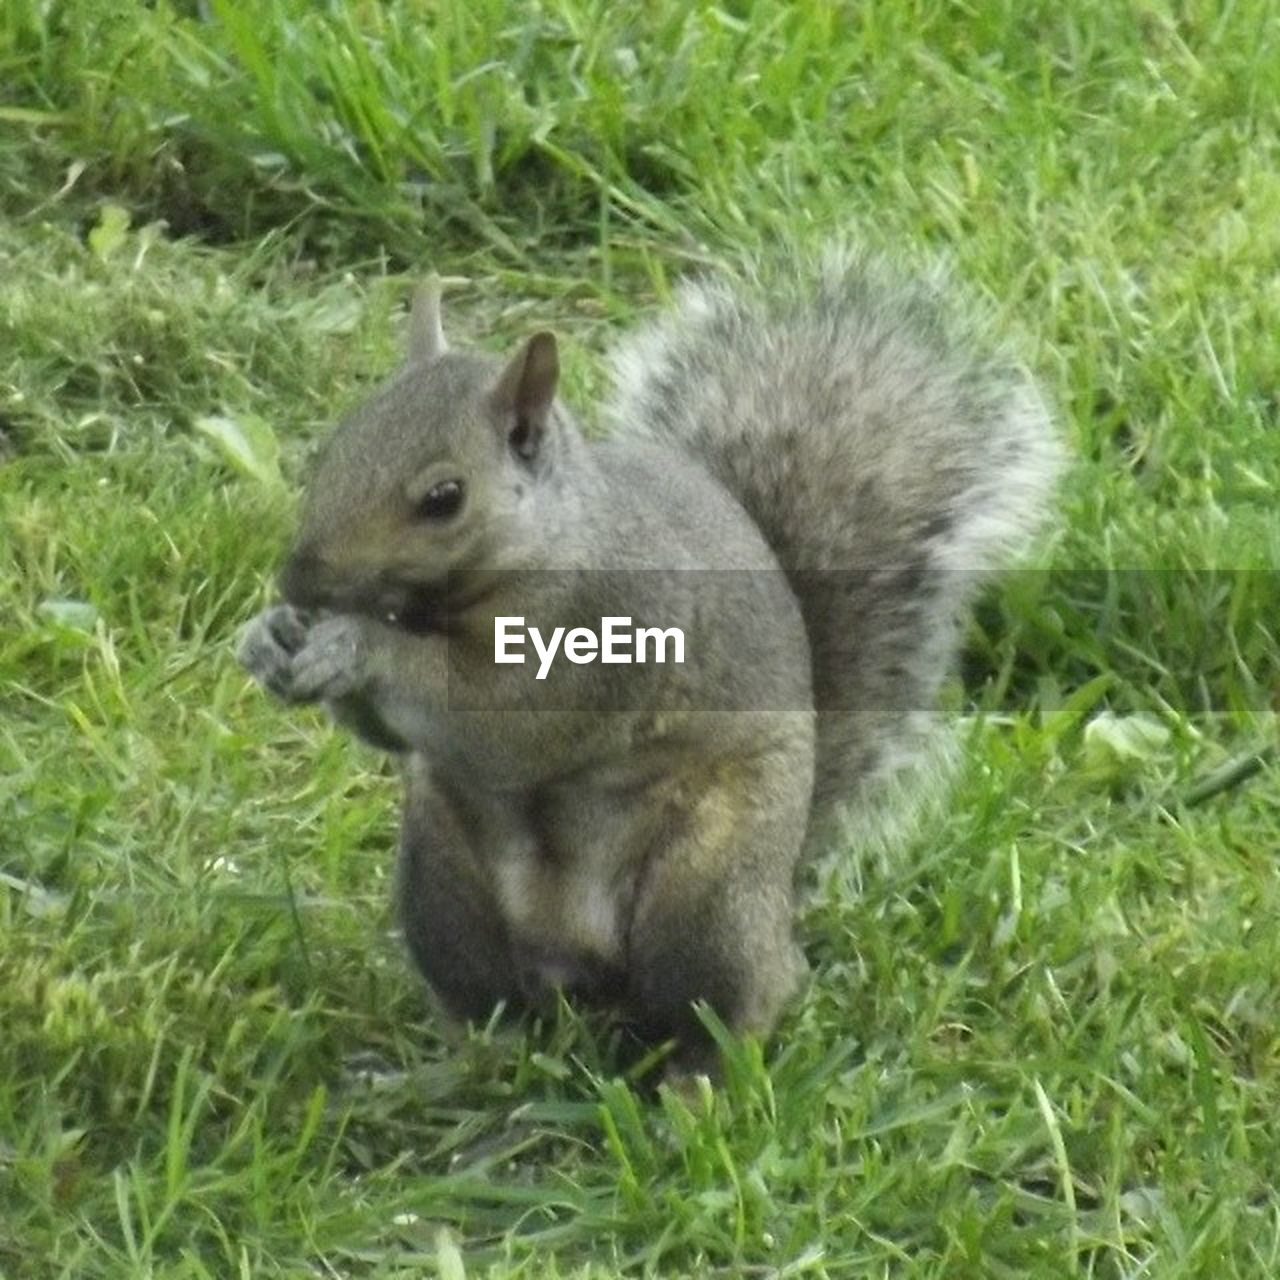 grass, one animal, animals in the wild, animal themes, animal wildlife, mammal, field, no people, outdoors, nature, day, squirrel, close-up